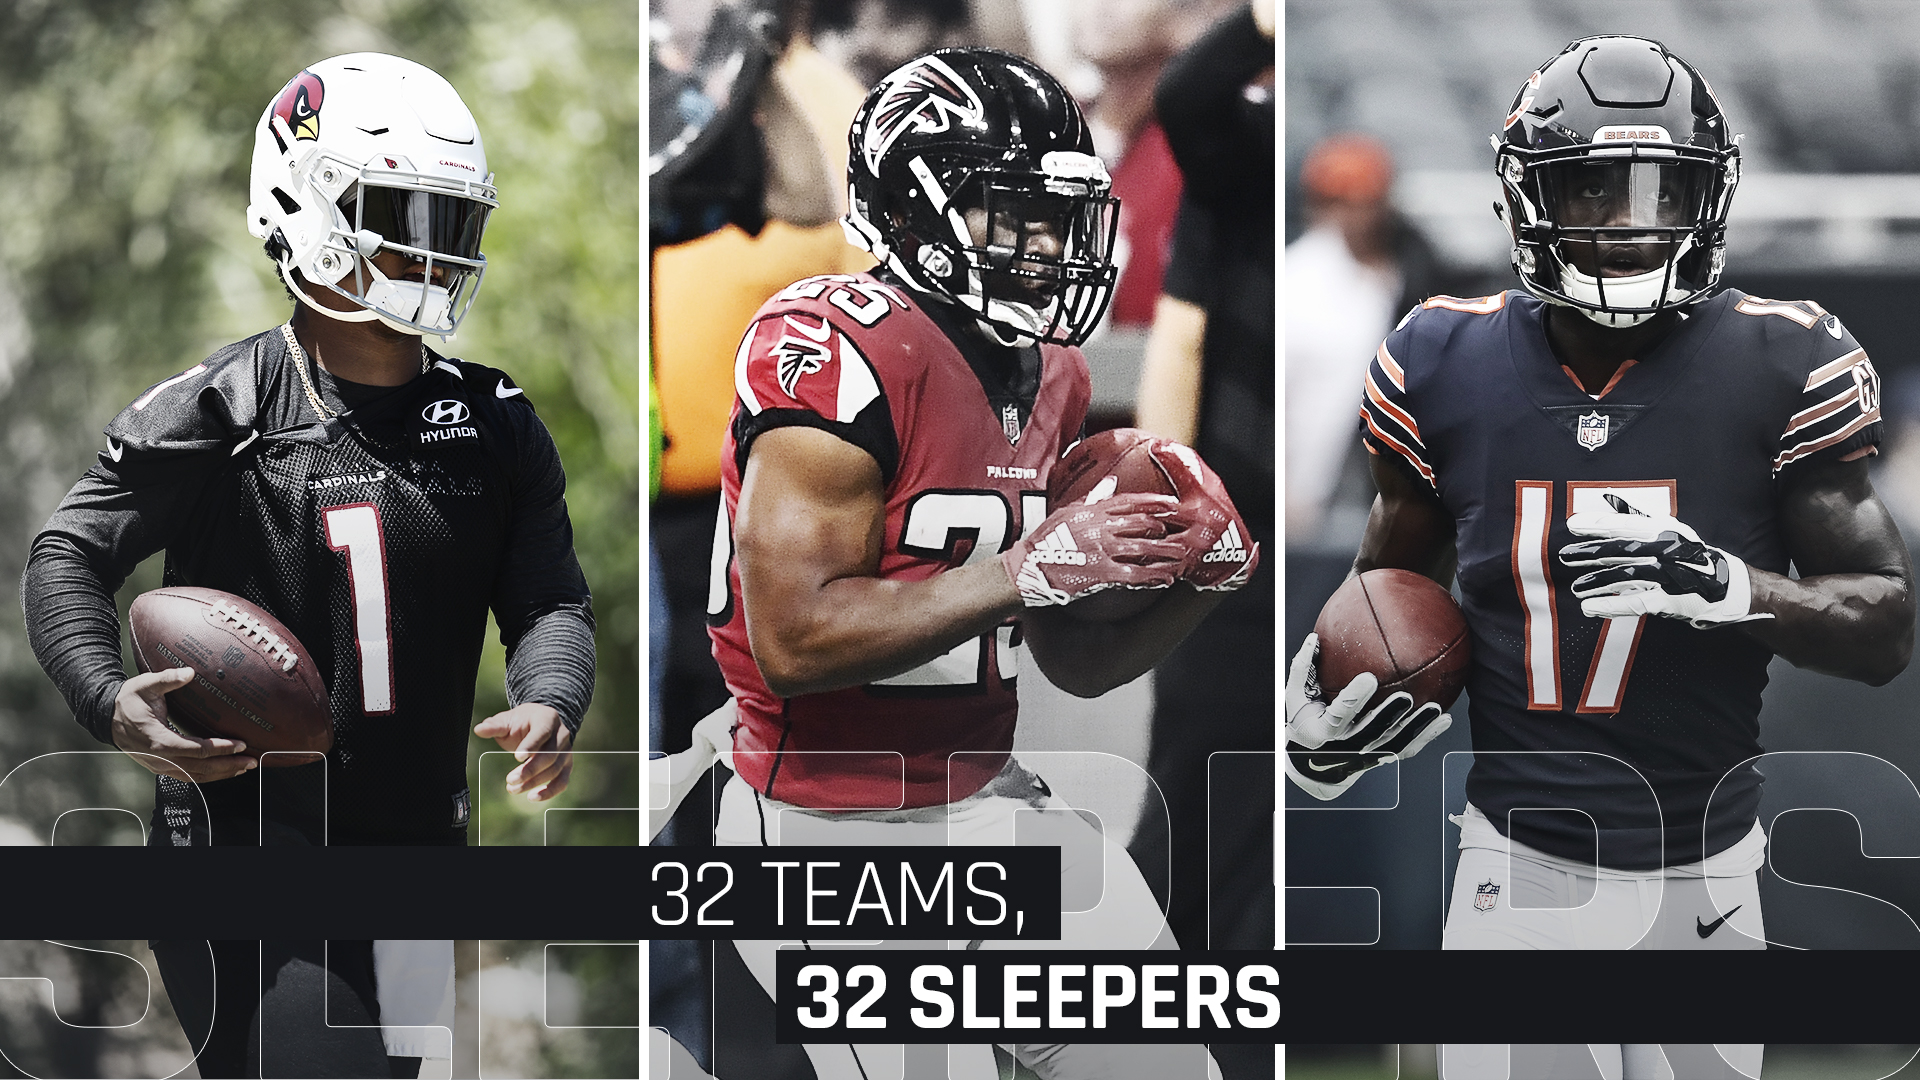 2019 Fantasy Football Sleepers: 32 teams, 32 sleepers